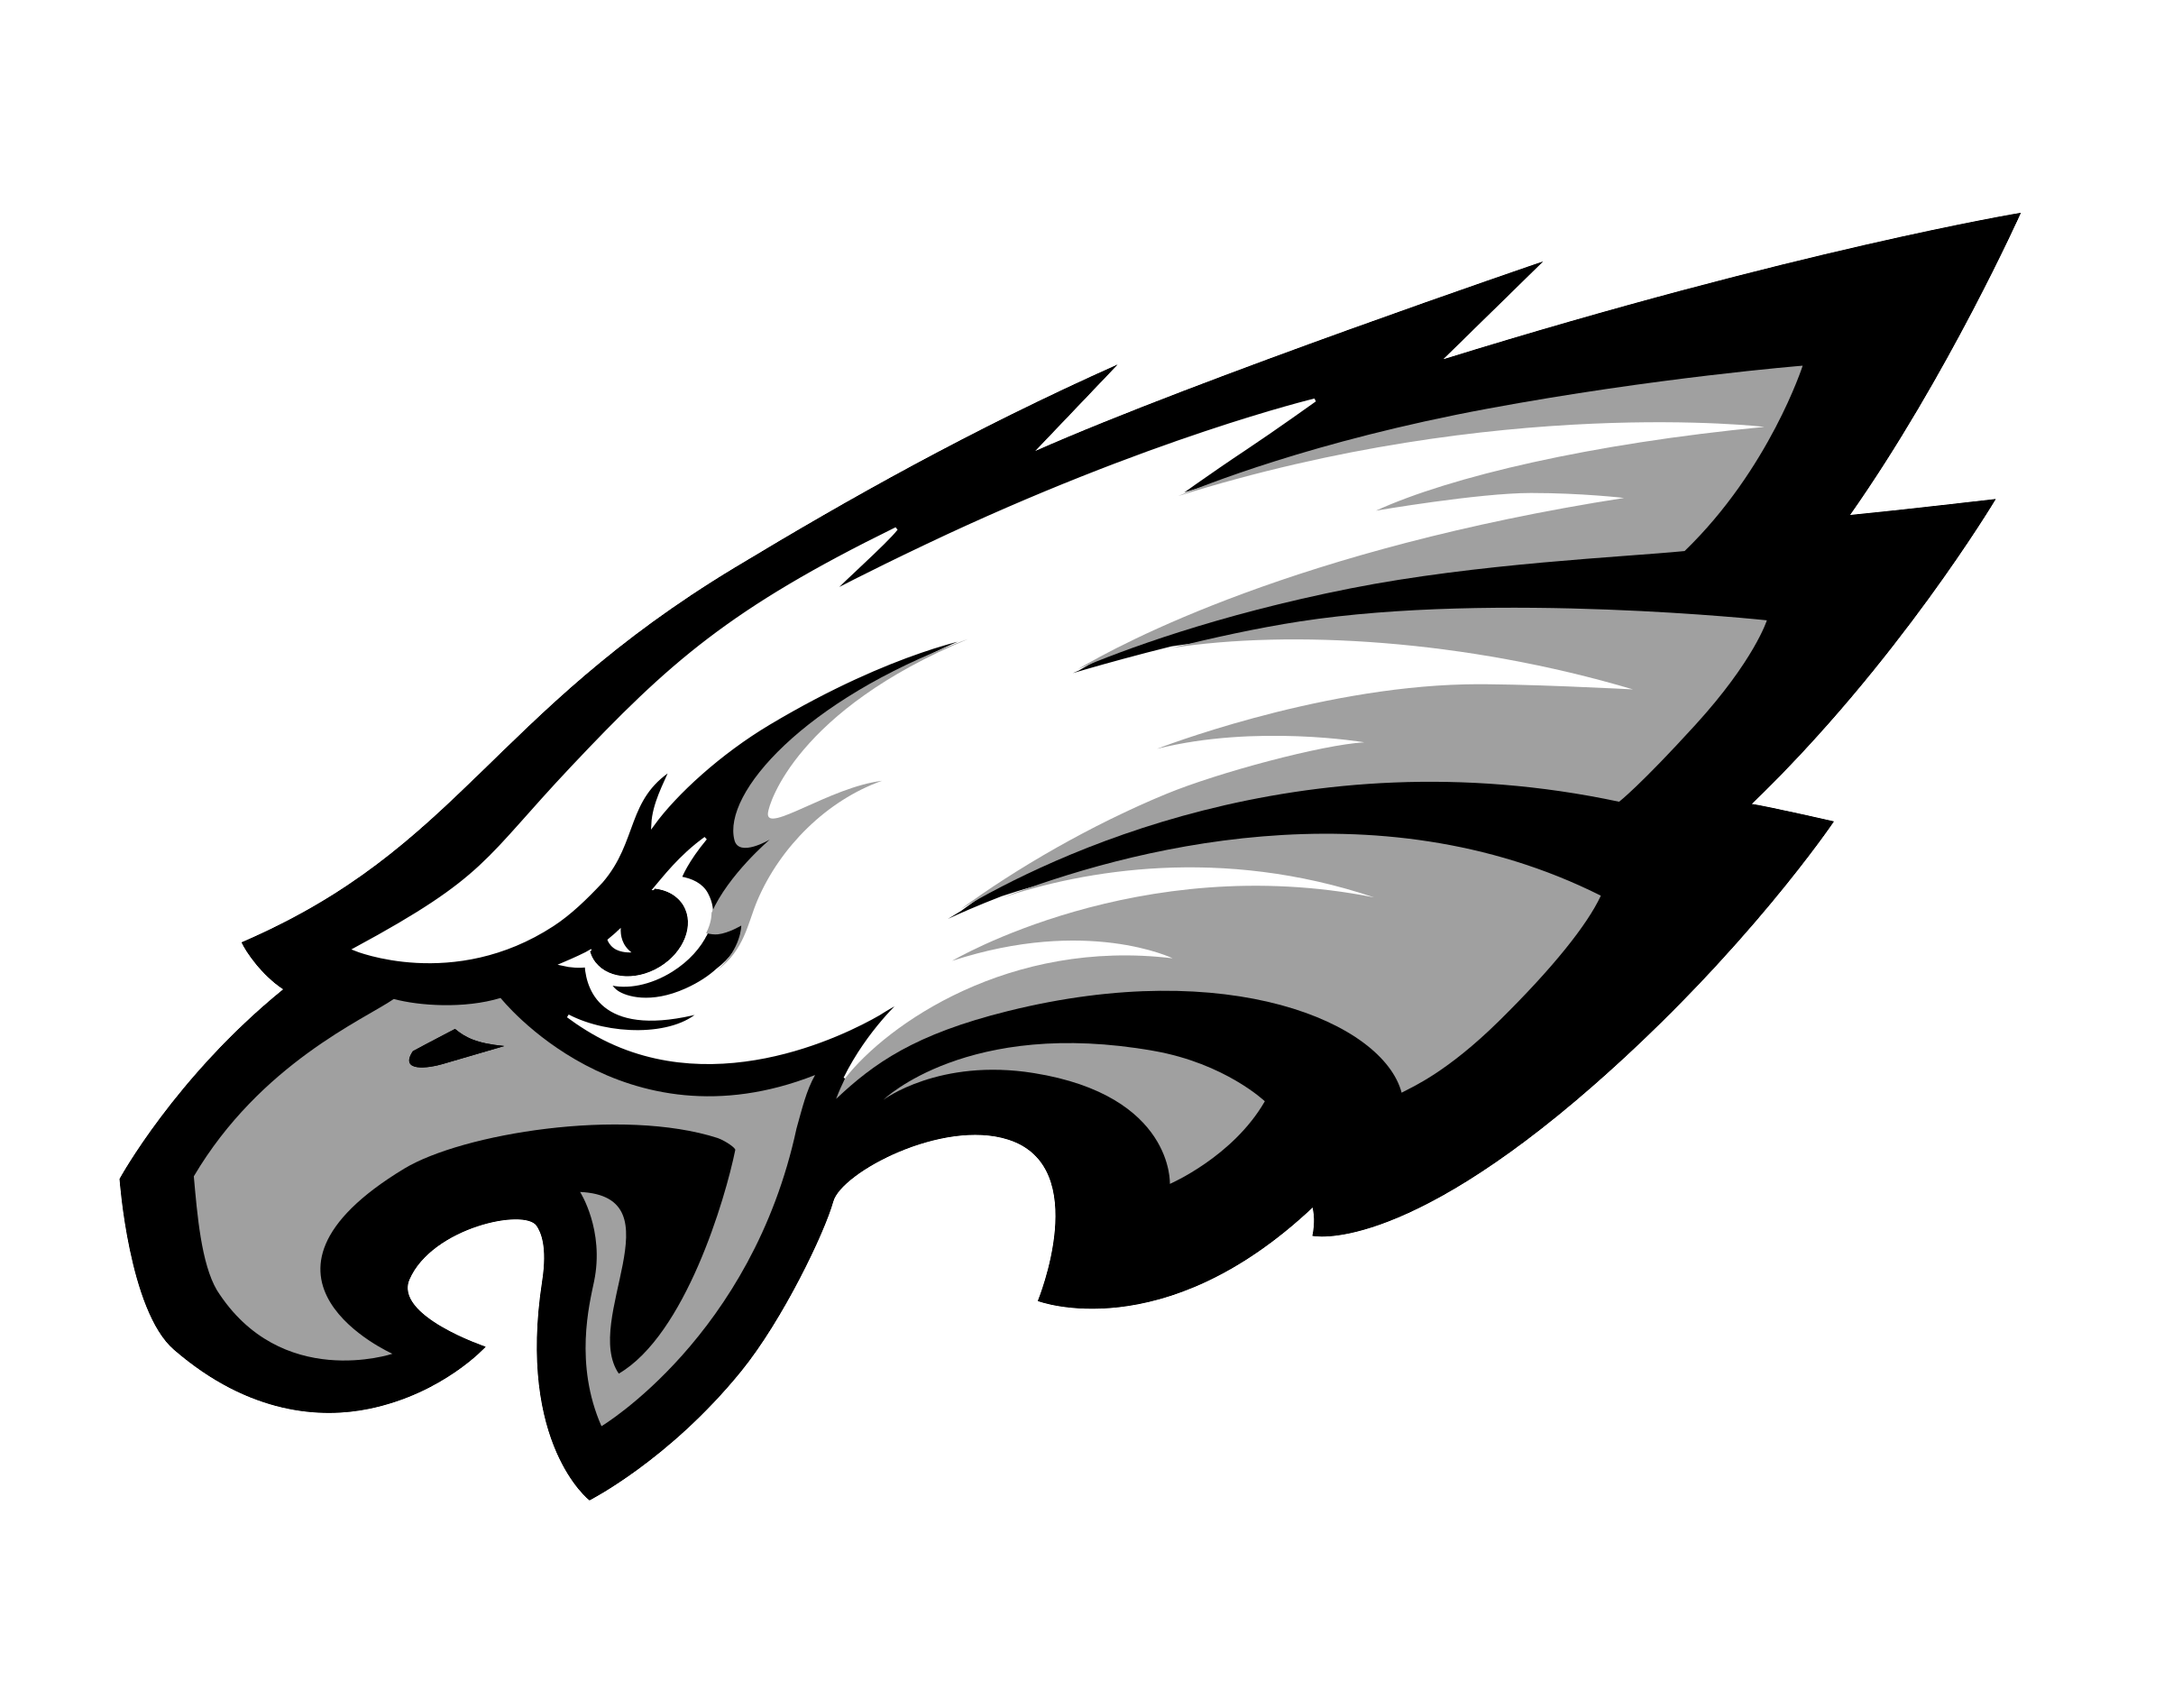 Black hawk logo png. Philadelphia eagles transparent svg